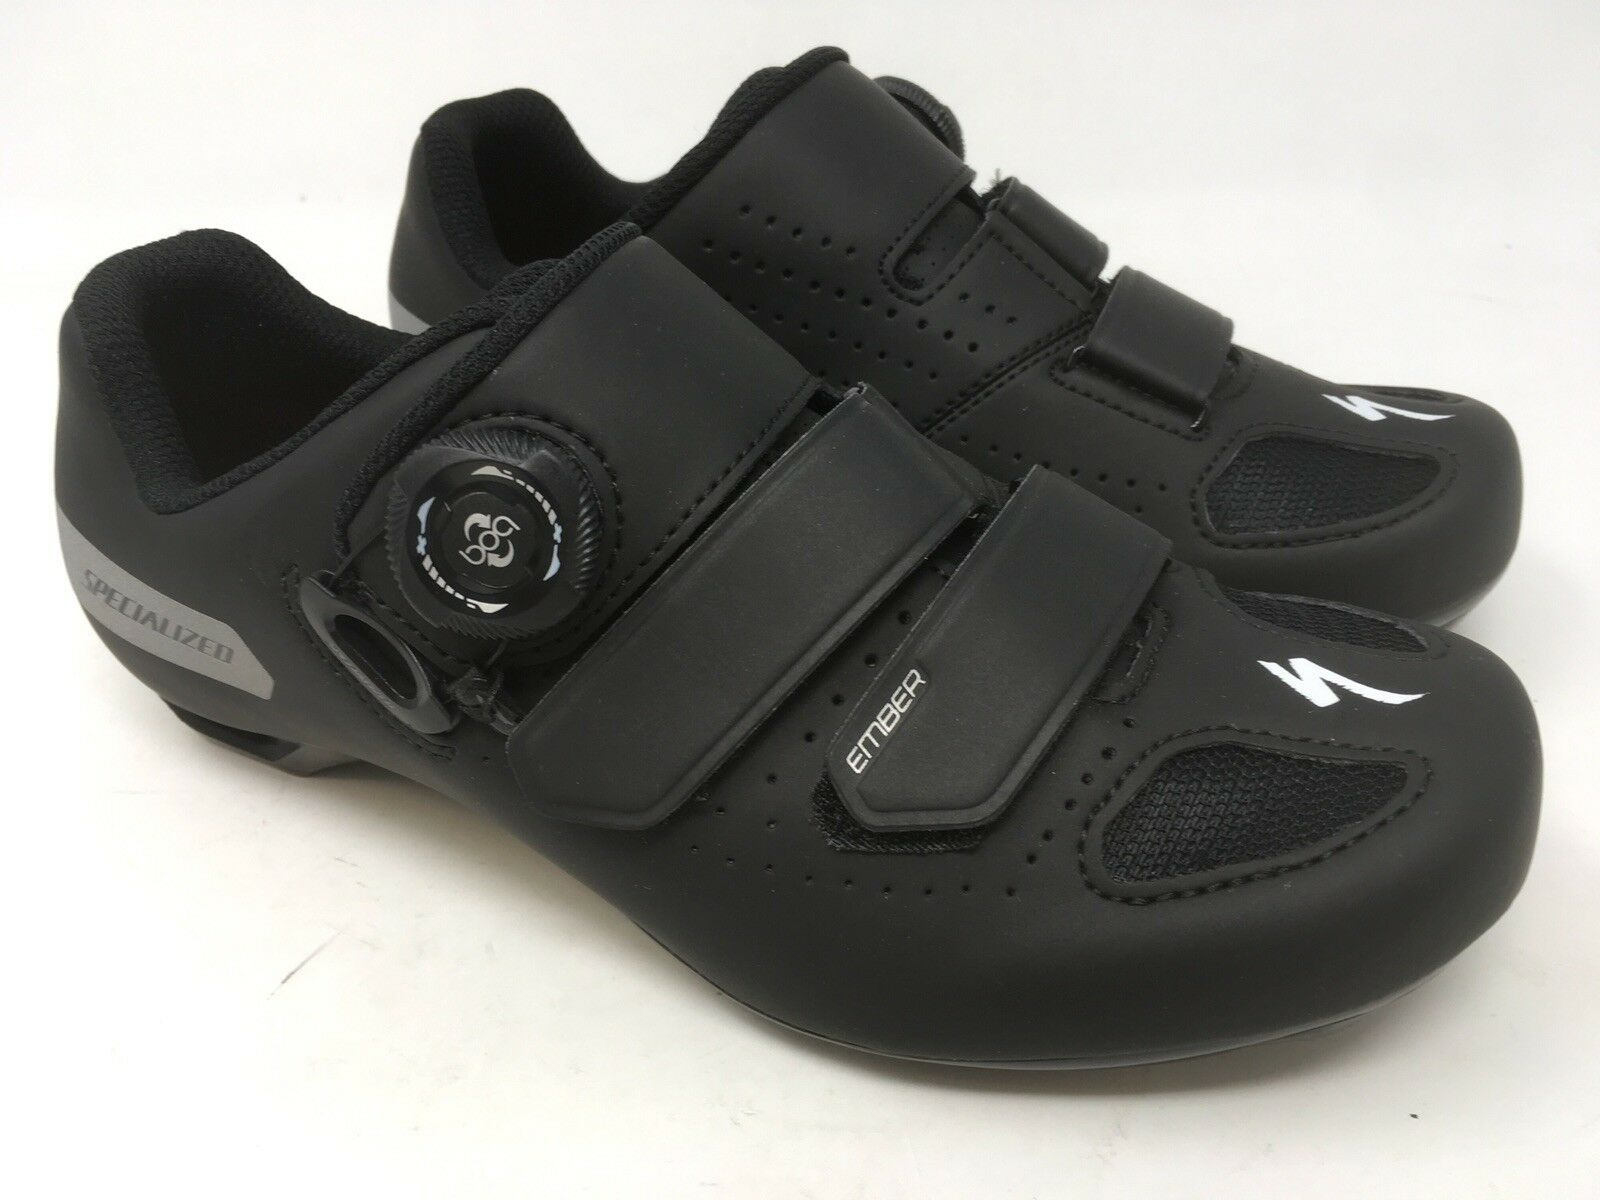 SPECIALIZED Ember Route Chaussures Femmes EU 38 US 7.25 UK 4.75 Noir